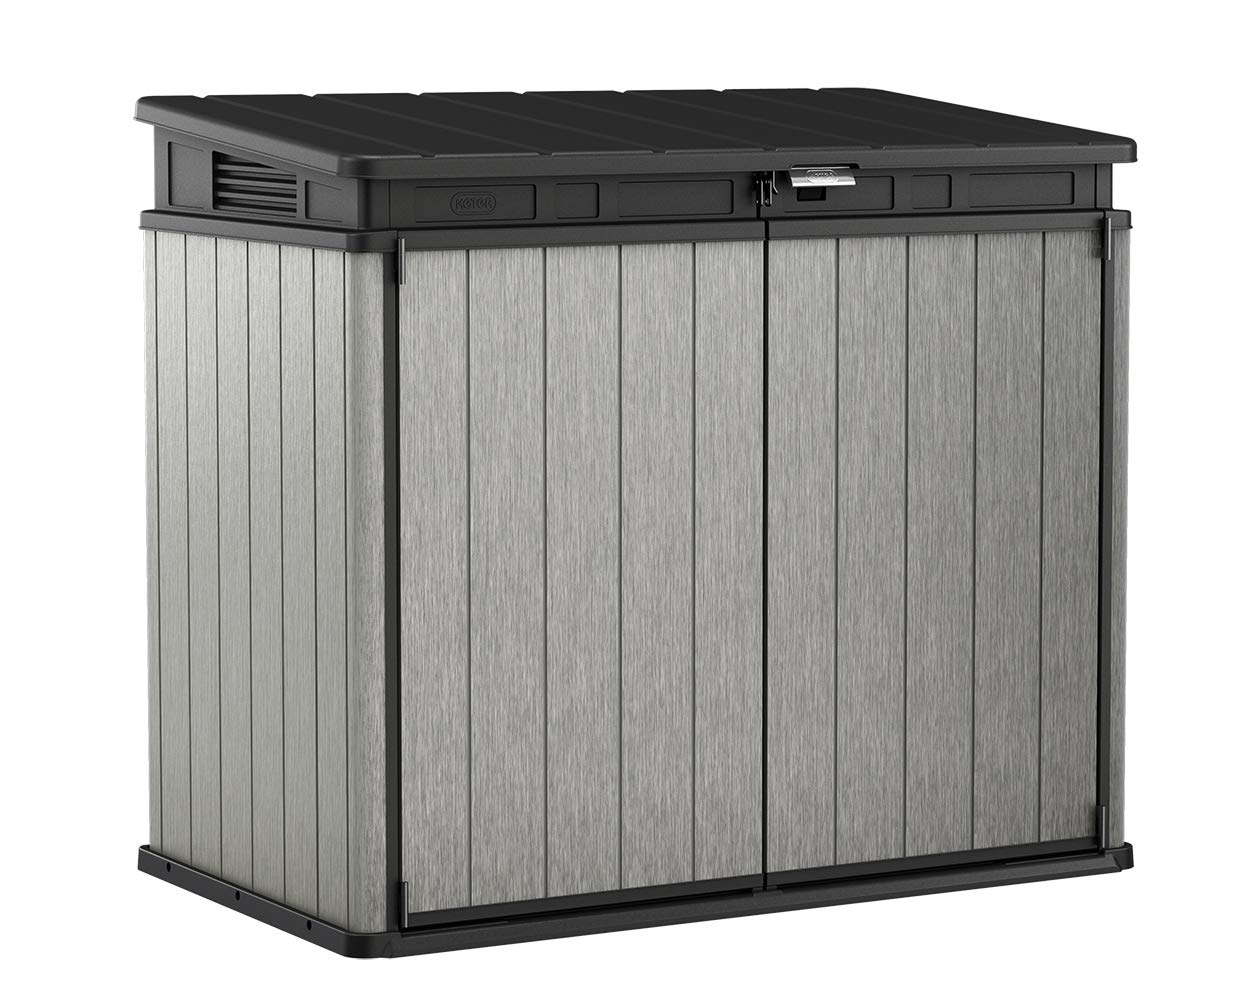 Keter 237831 Elite Outdoor Storage Shed, Grey/Black by Keter